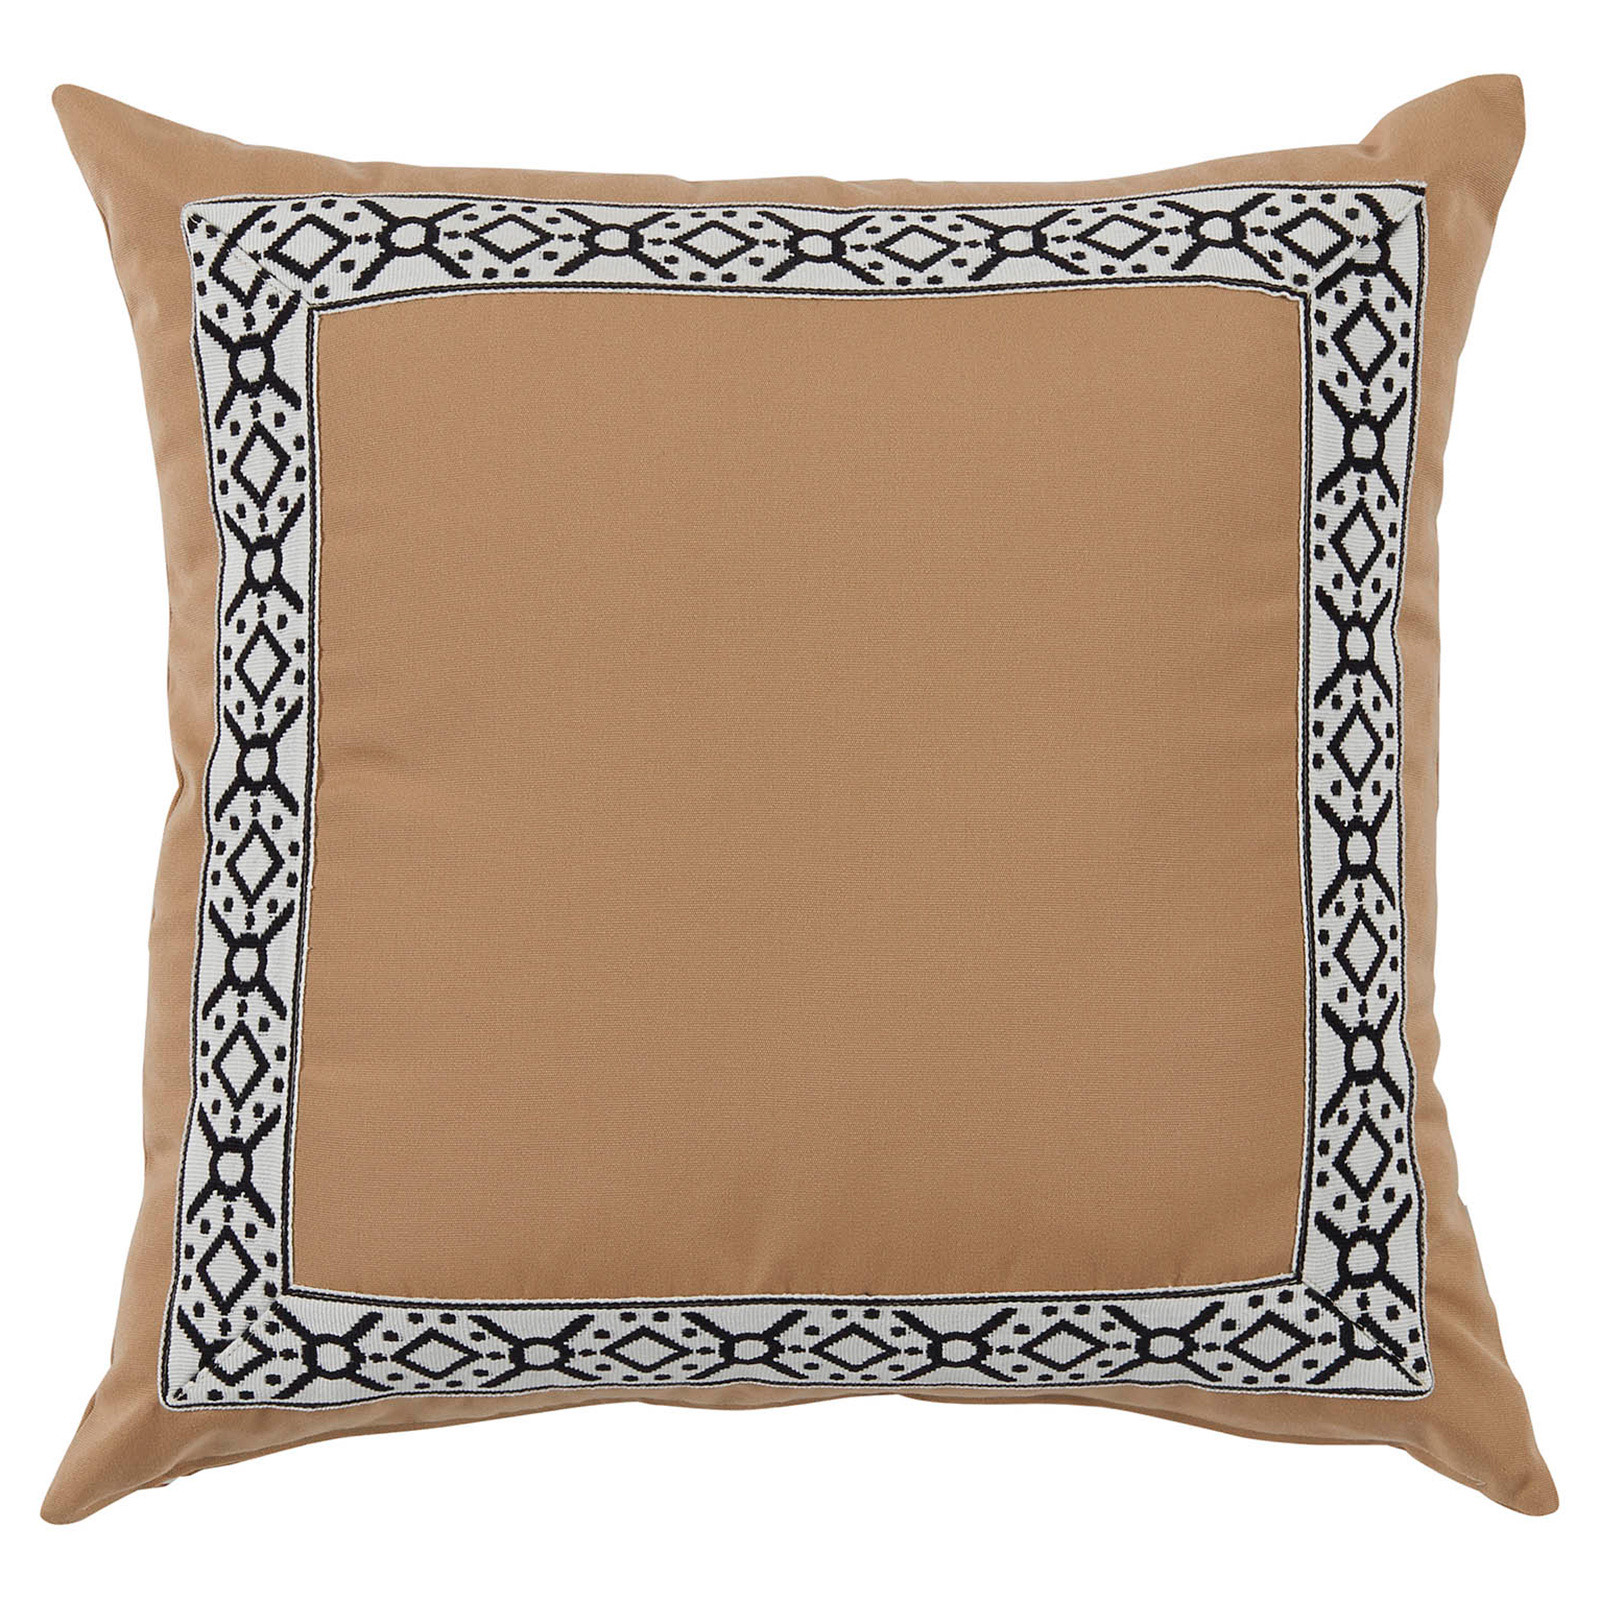 Perri Modern Global Trim Camel Outdoor Pillow - 22x22